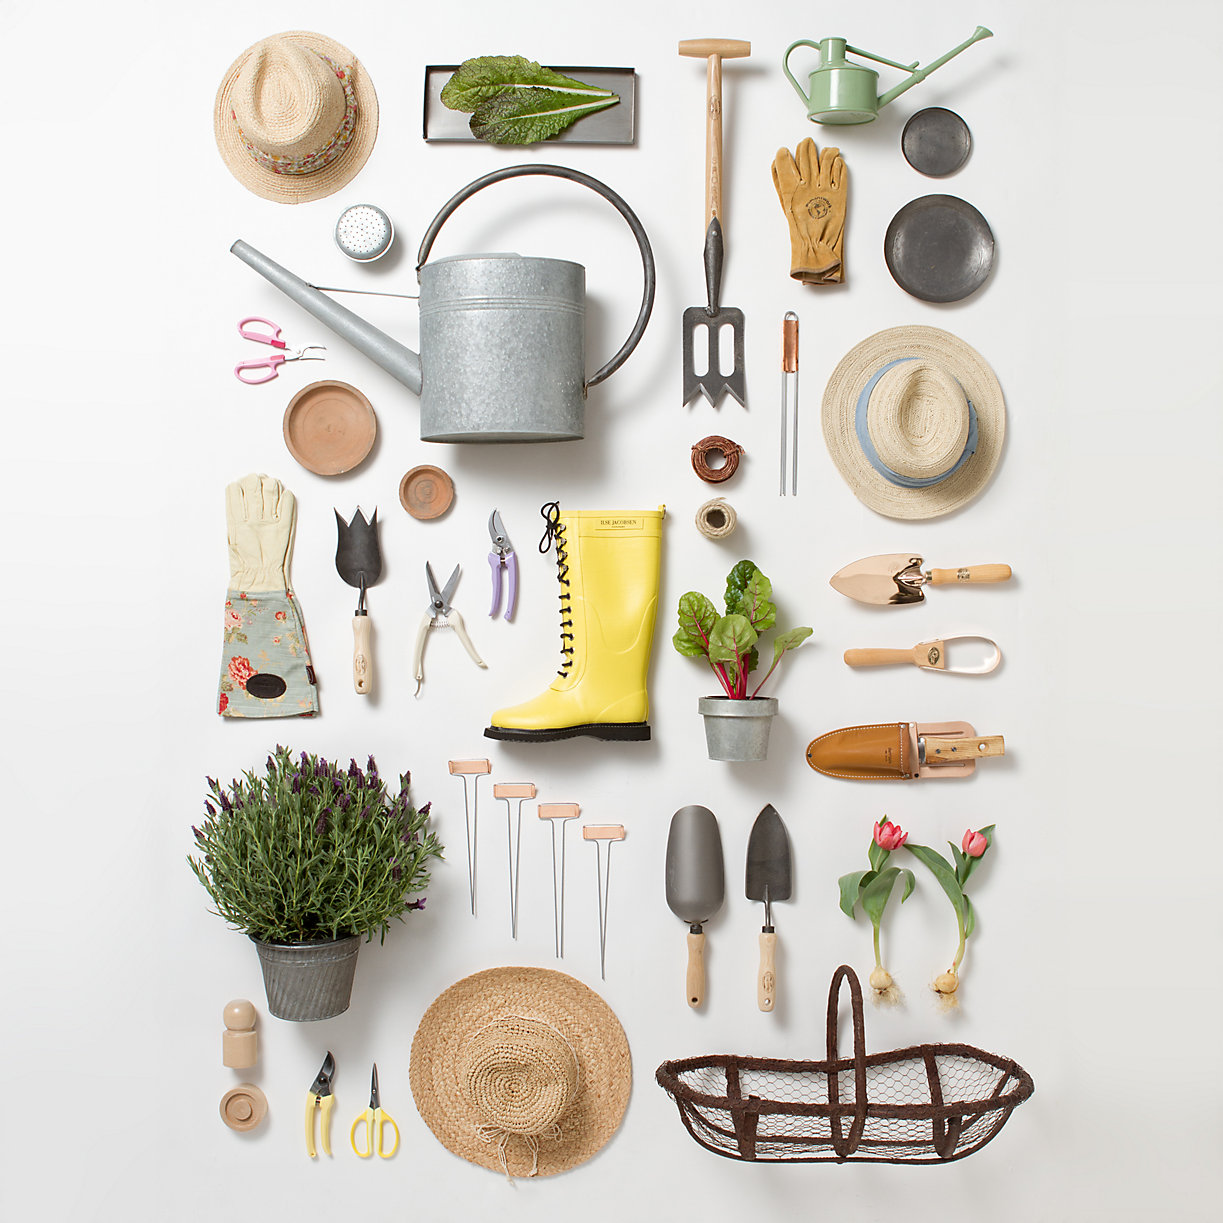 Gardening Gifts For Him >> Gifts For The Gardening Enthusiast Cool Gifting